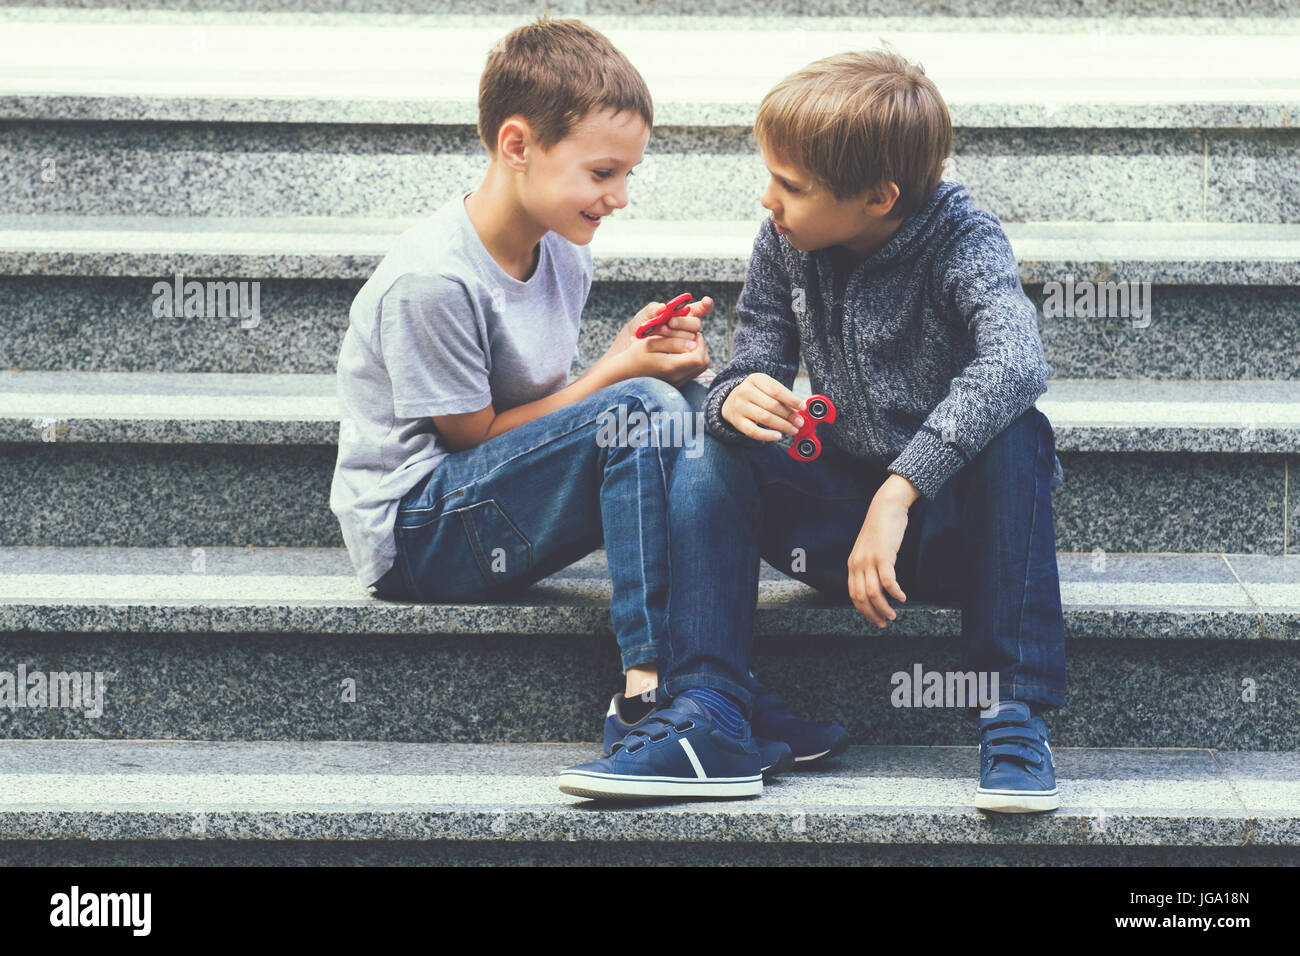 Boys playing with a fidget spinners outdoors - Stock Image